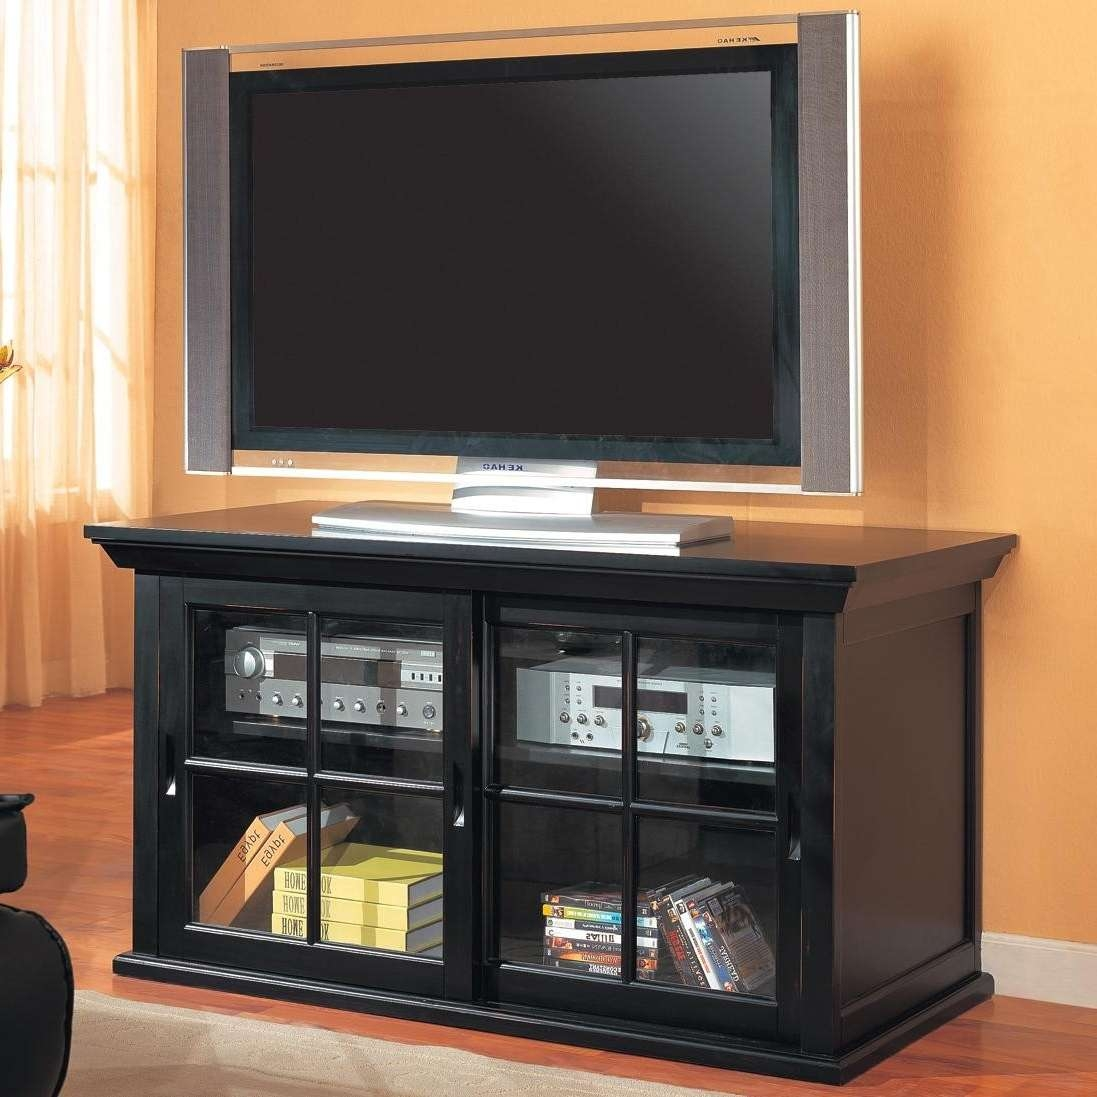 Small Tv Cabinets With Glass Doors • Cabinet Doors Intended For Tv Cabinets With Glass Doors (View 17 of 20)